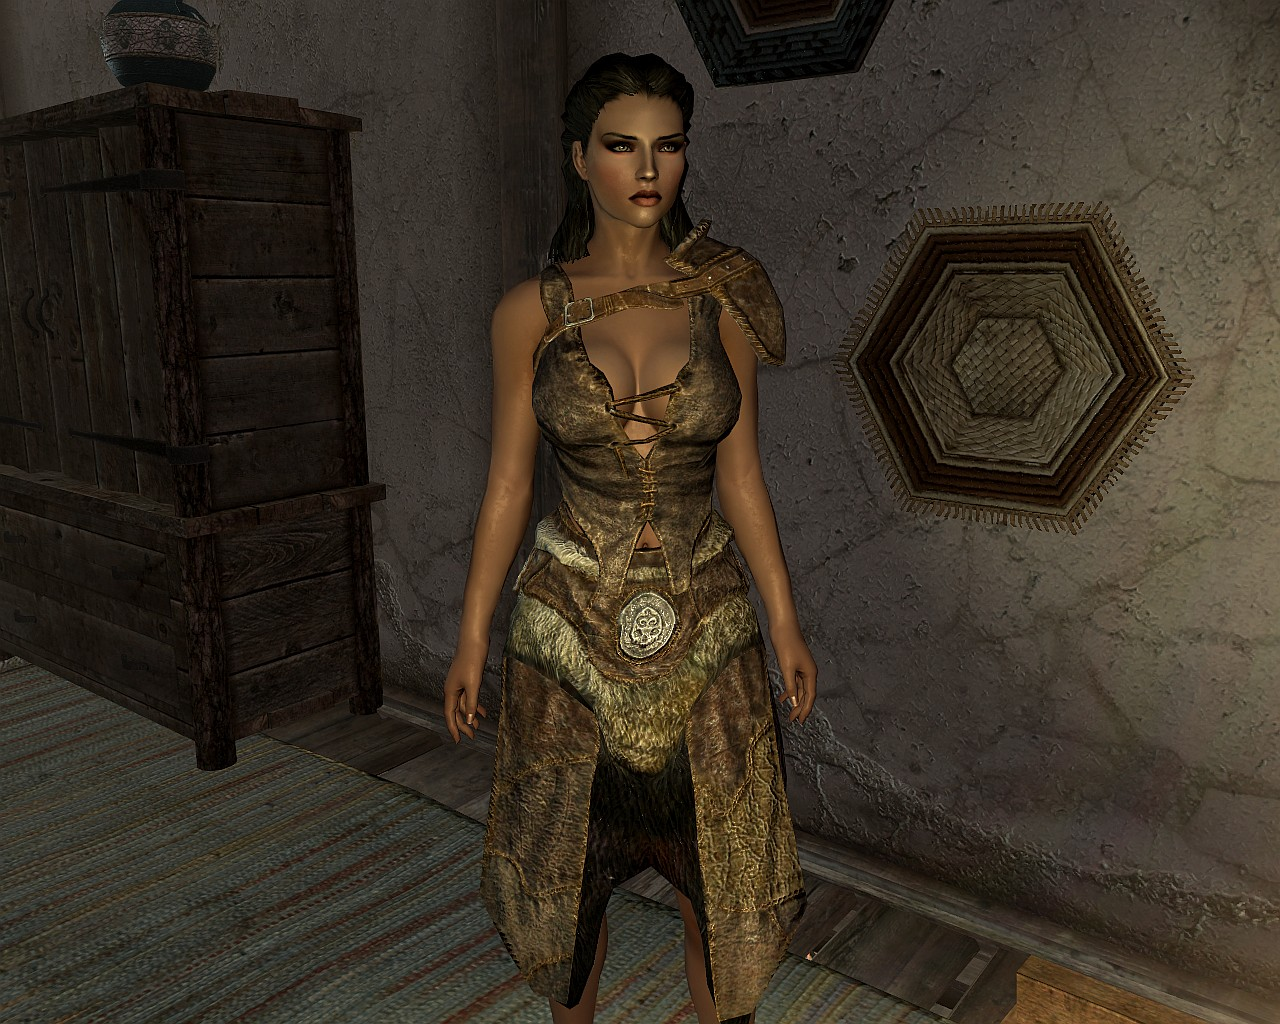 Cbbe bbp Armor download Games